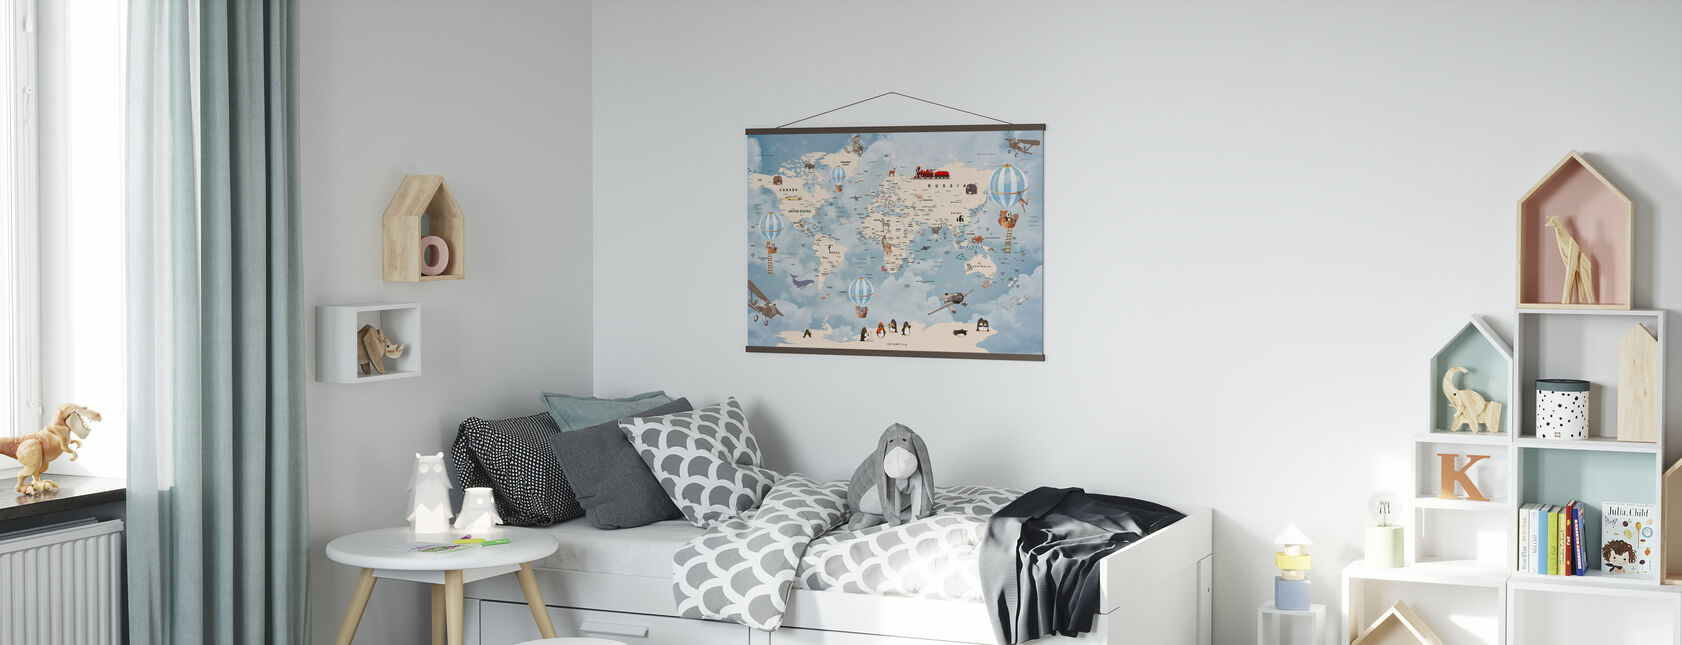 Animals Home Map - Poster - Kids Room